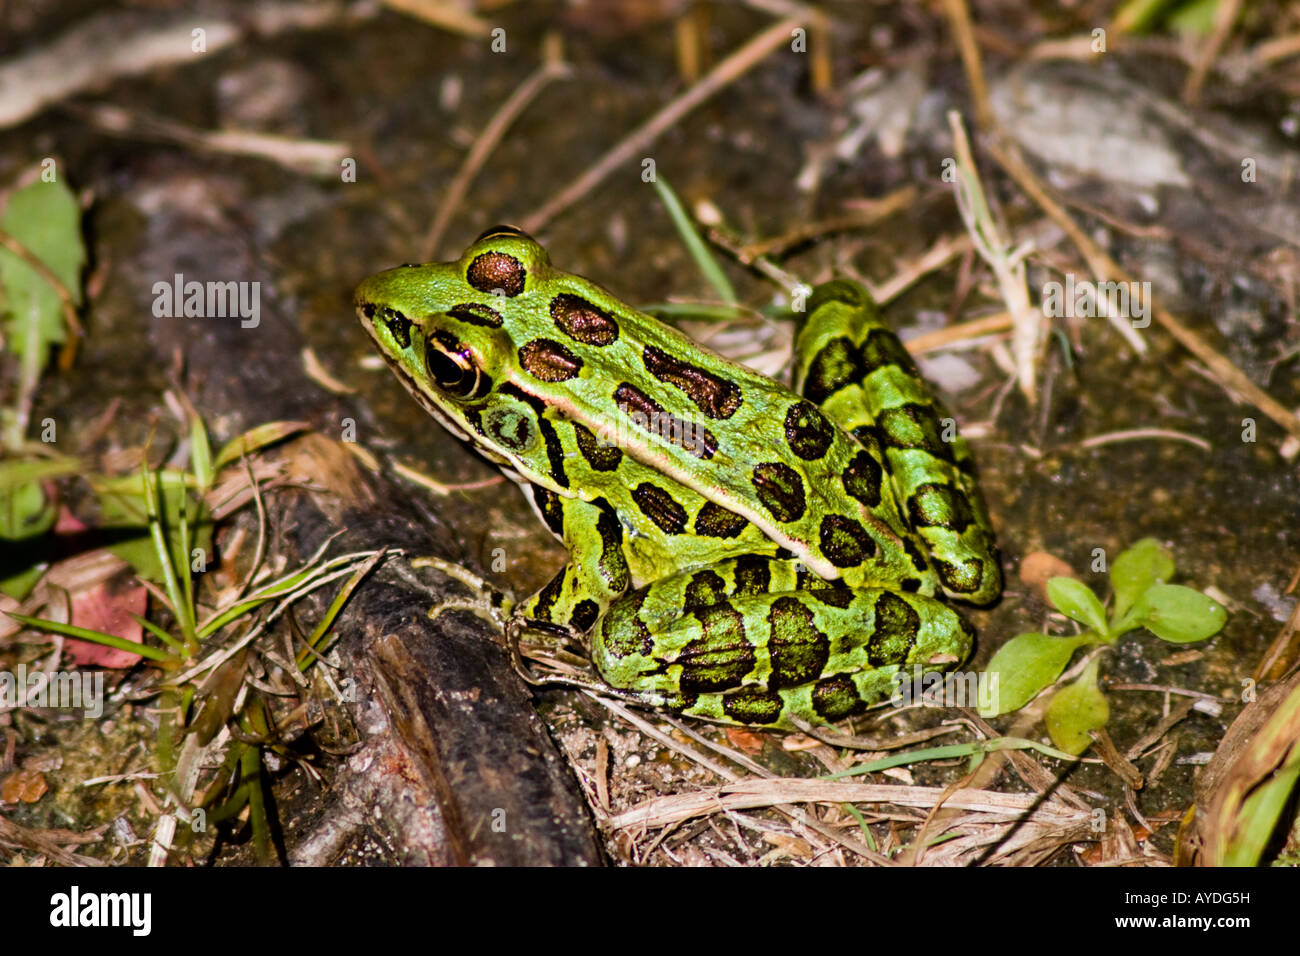 Green spotted frog on the ground Stock Photo